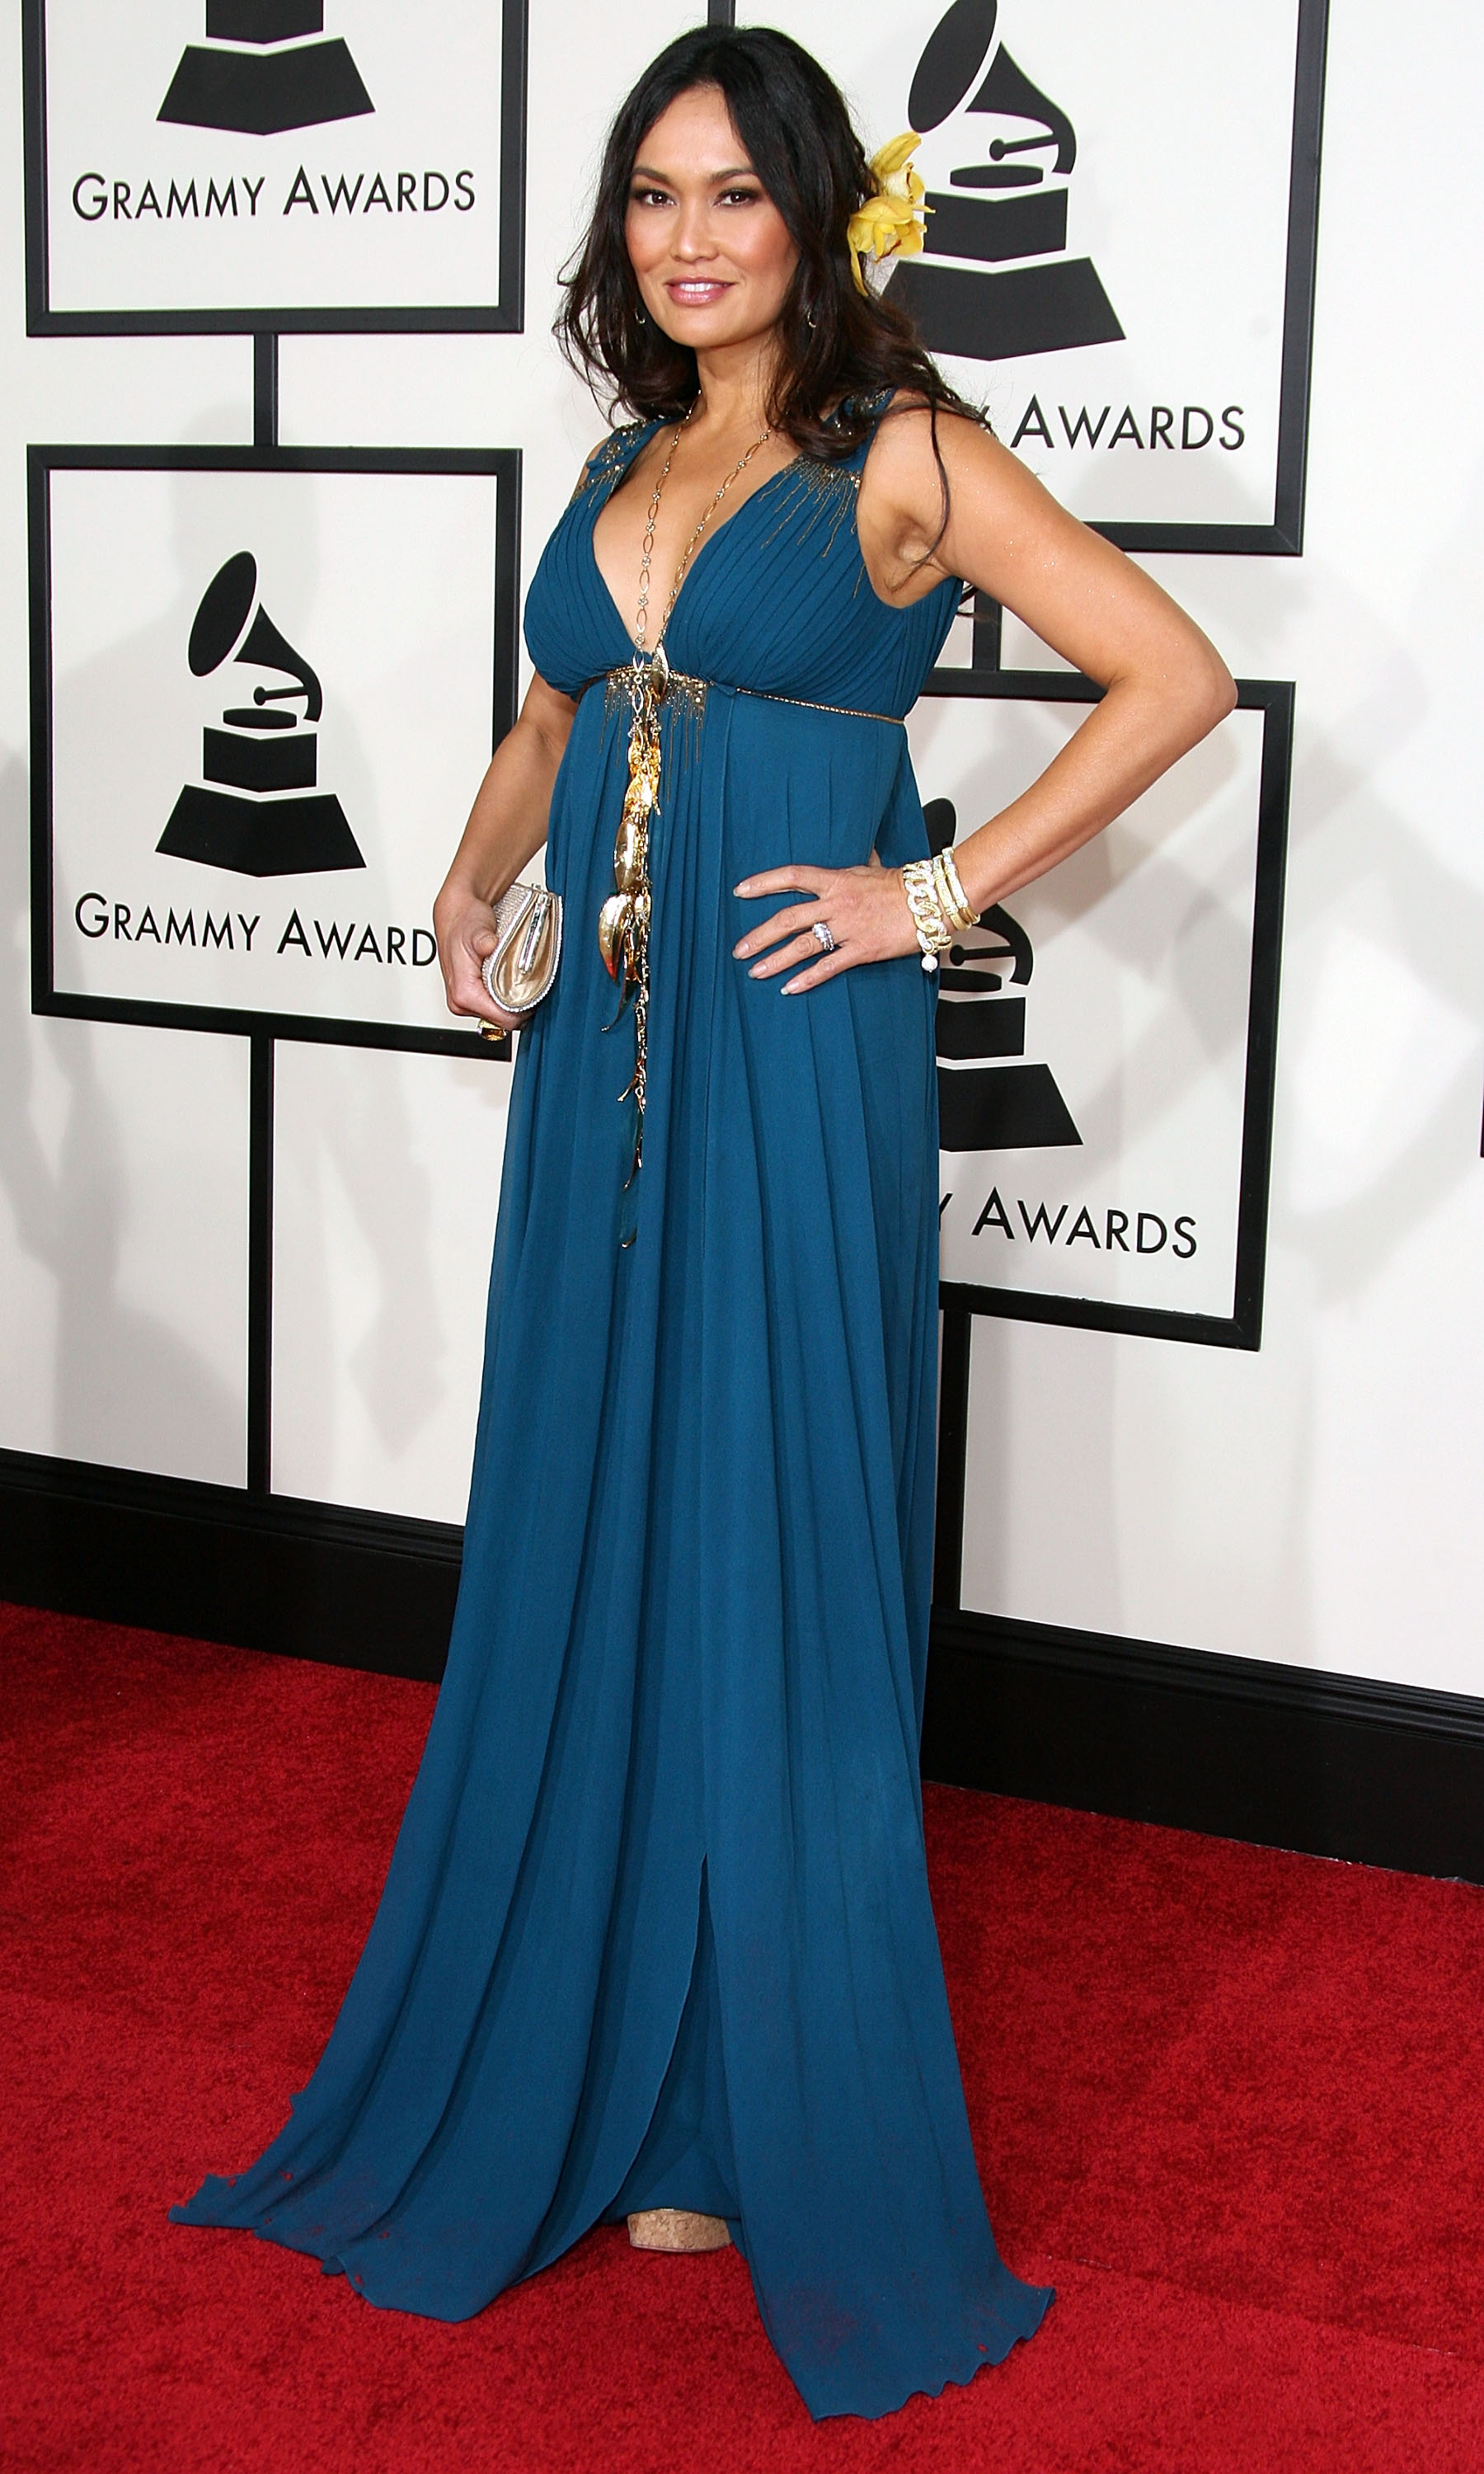 92841_by_Septimiu_Tia_Carrere-50th_Annual_Grammy_Awards_Arrivals-02_846_122_1010lo.jpg